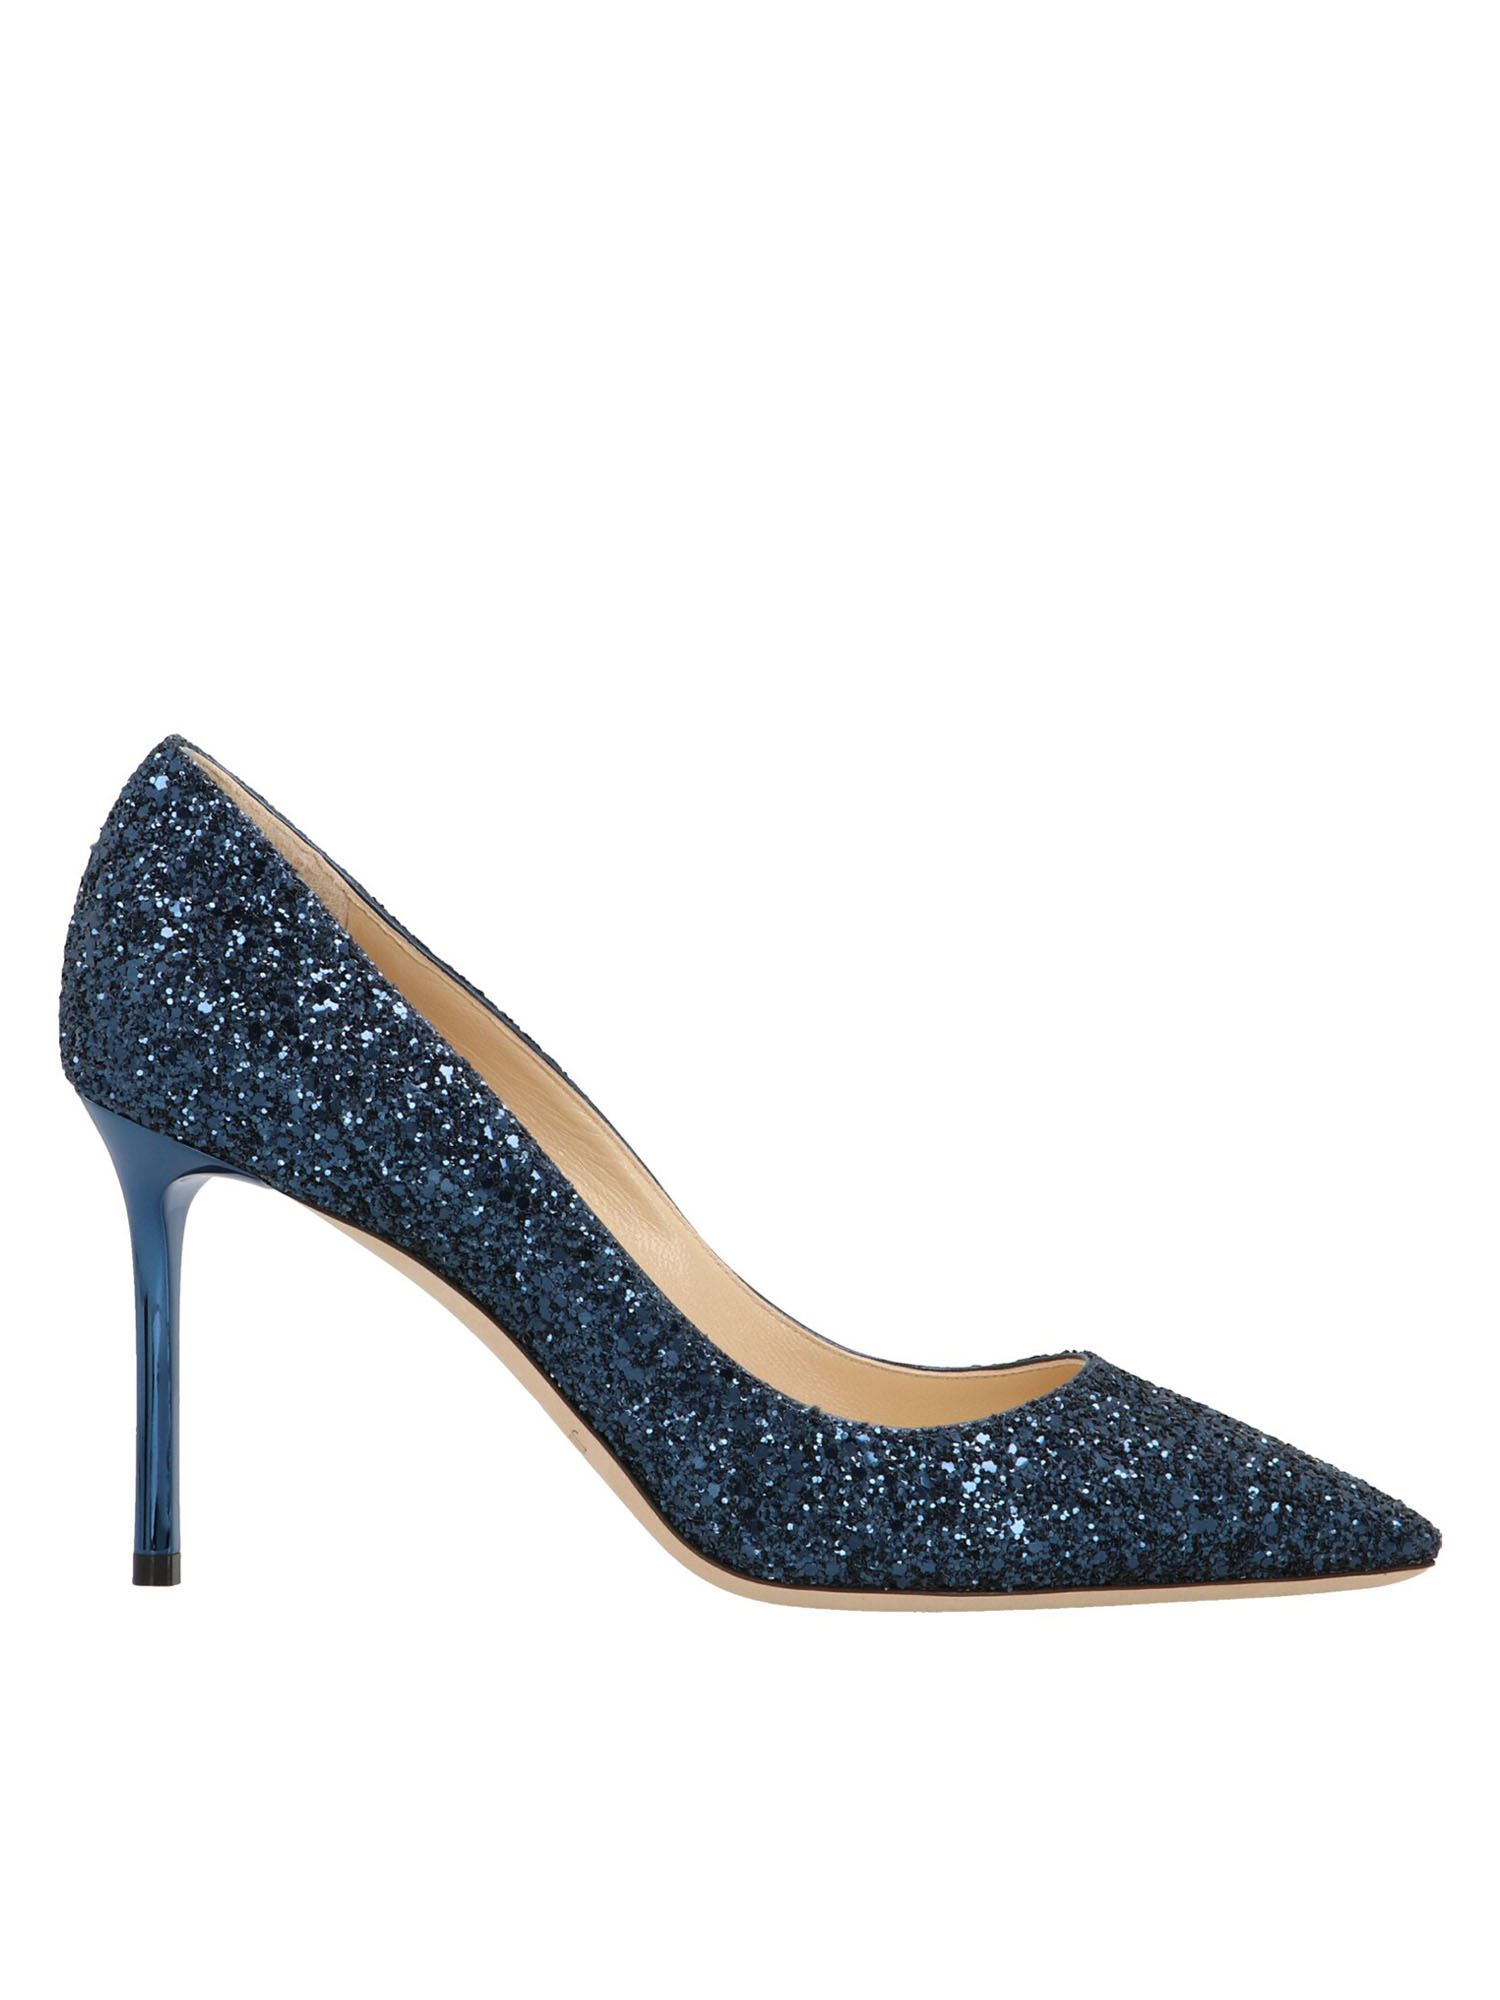 Jimmy Choo ROMY 85 PUMPS IN BLUE